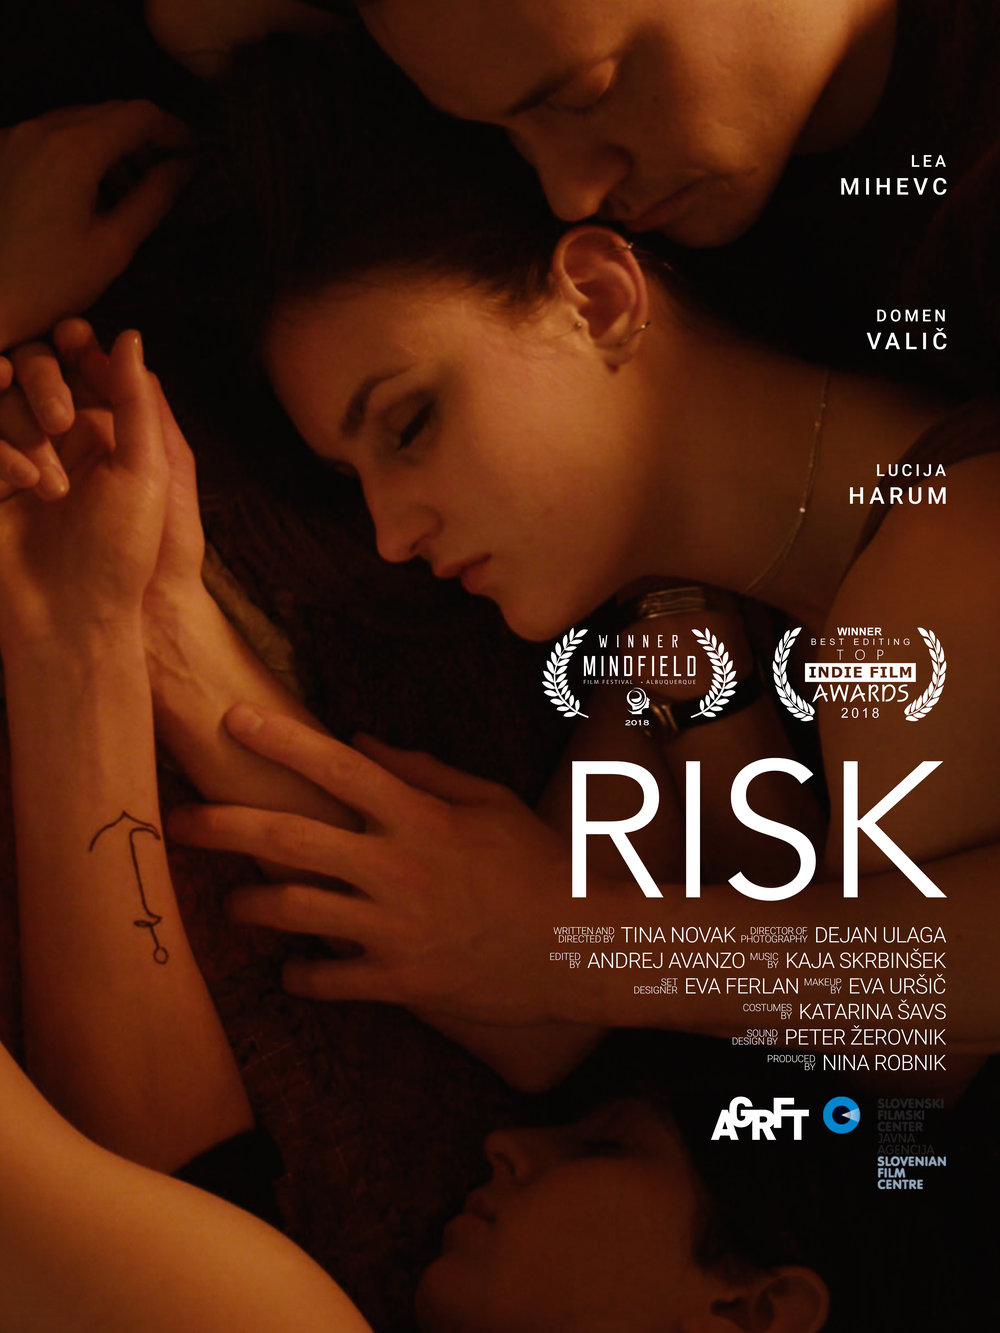 RISK - A short film directed by Tina Novak is a project I am really proud of. Some festivals are still waiting for us but amongst many nominations so far the film has won Best Short Film at Mindfield Film Festival (Albaquerque) , Best Editing at Top Indie Film Awards (USA) , Best Student Director at LIFFE ( Serbia), Best Cinematography at RUFF (London)and was nominated for Best Short at LGBT Toronto Film Festival (Canada) and Genre Celebretion Film Festival (Tokyo) where I was also nominated for Best Male Lead. It got other nominations at differrent festivals as well.